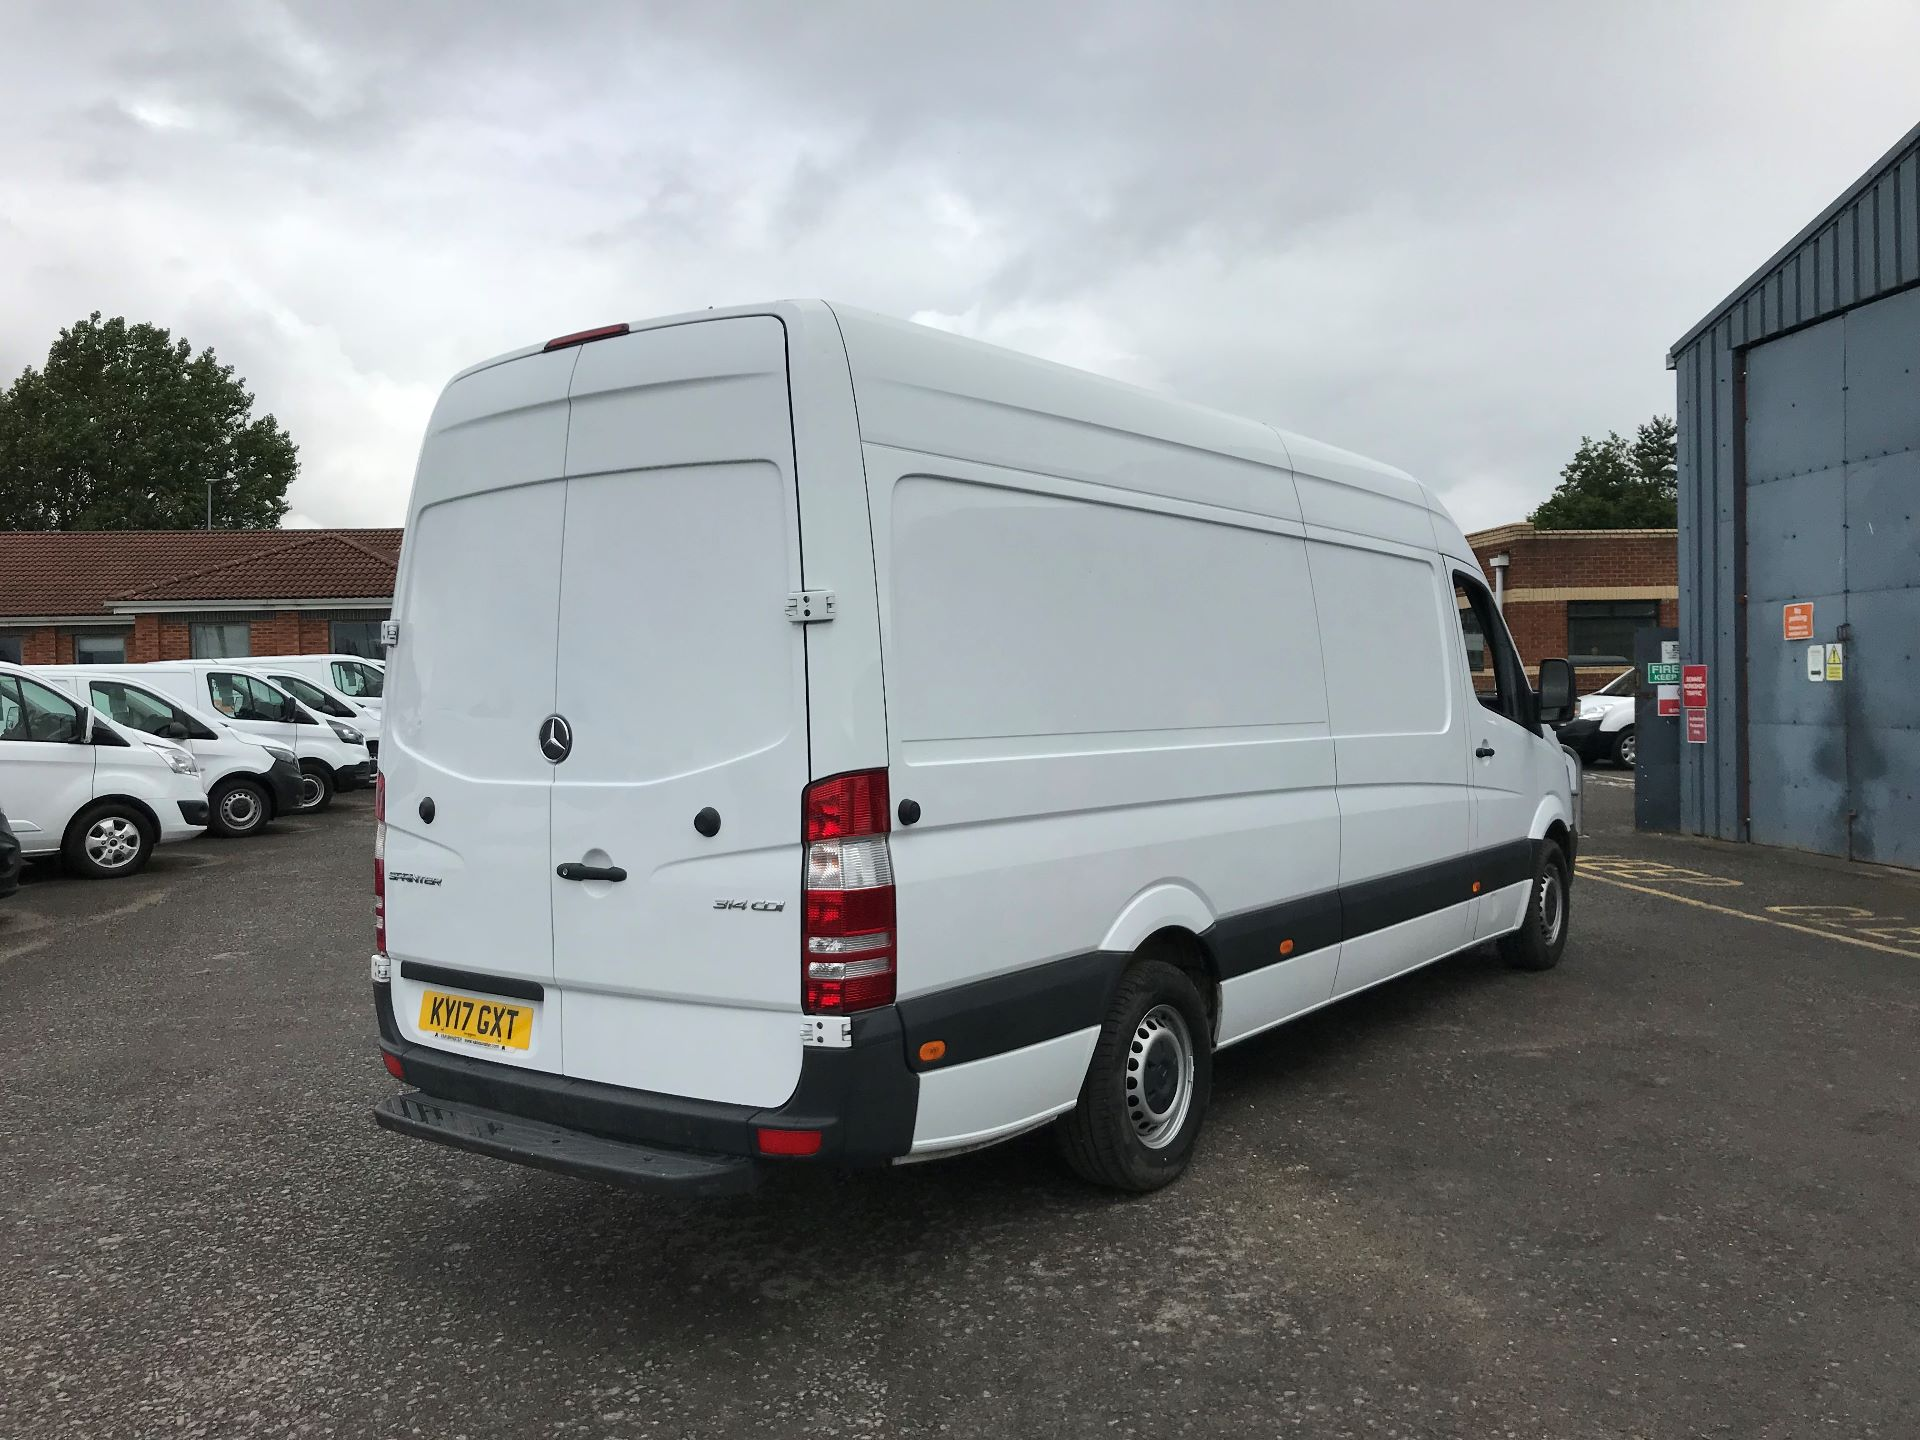 2017 Mercedes-Benz Sprinter 3.5T High Roof Van *VALUE RANGE VEHICLE CONDITION REFLECTED IN PRICE* (KY17GXT) Image 4